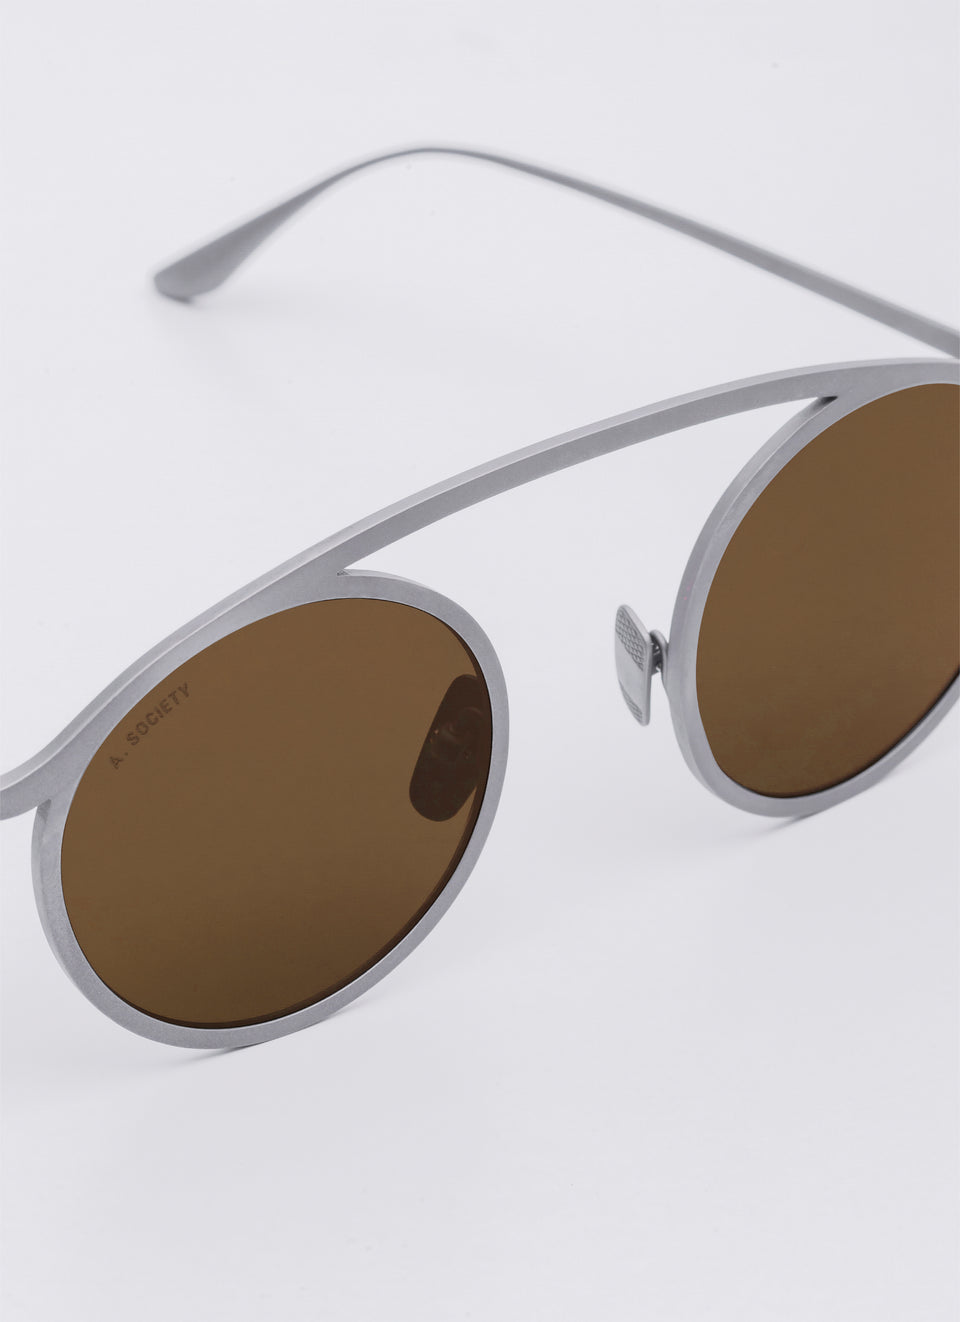 A SOCIETY NEO - Brown Titanium Round Sunglasses Detail